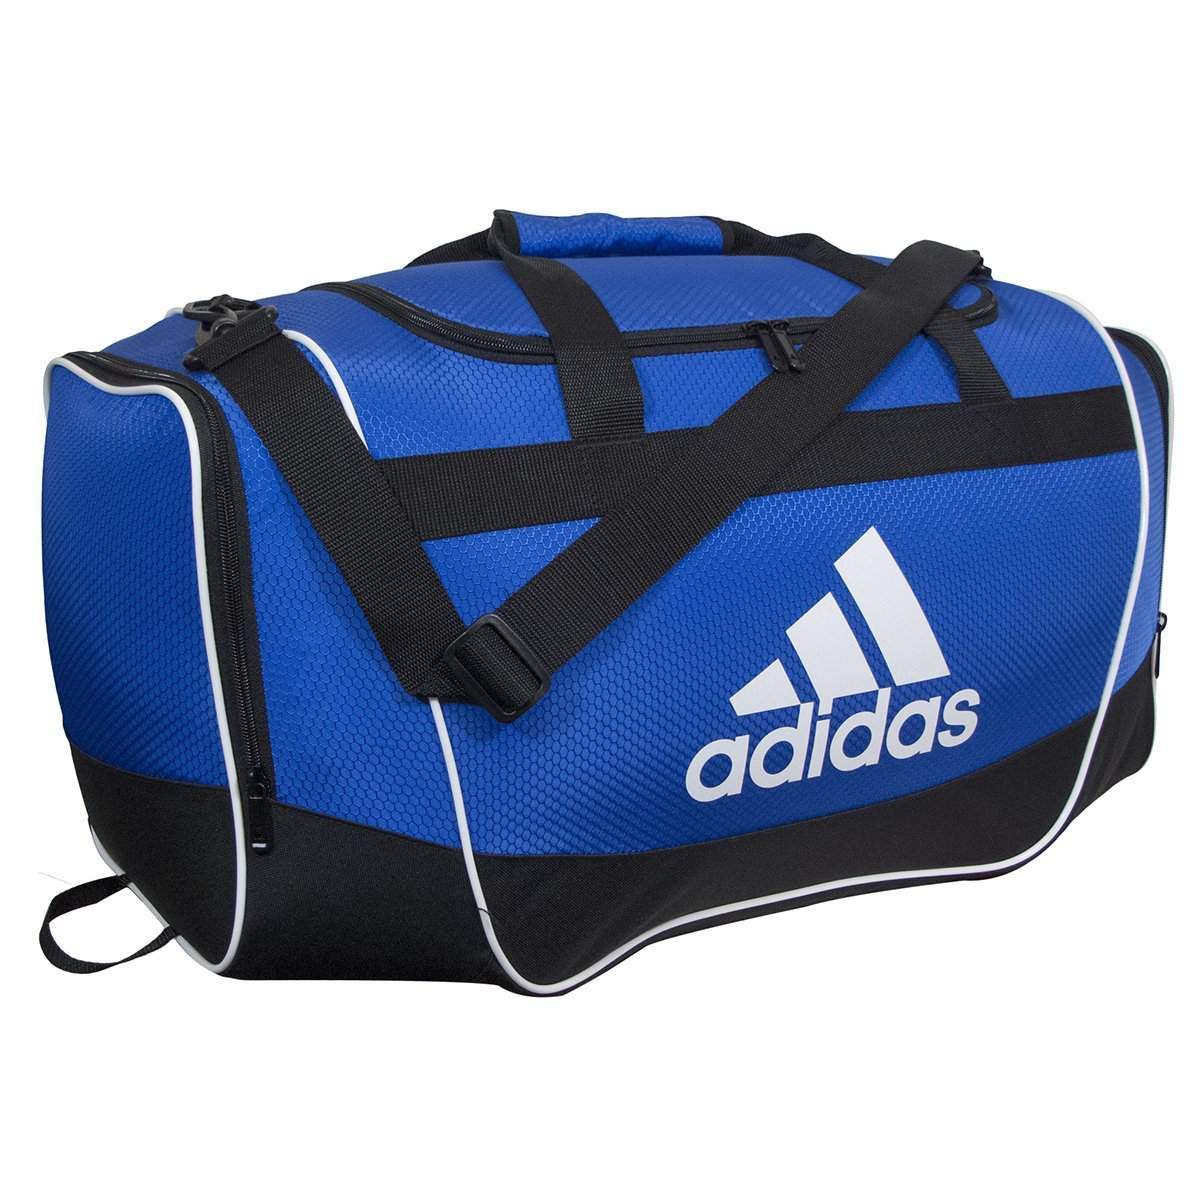 The 8 Best Gym Bags of 2019 4d3fc4712b40f